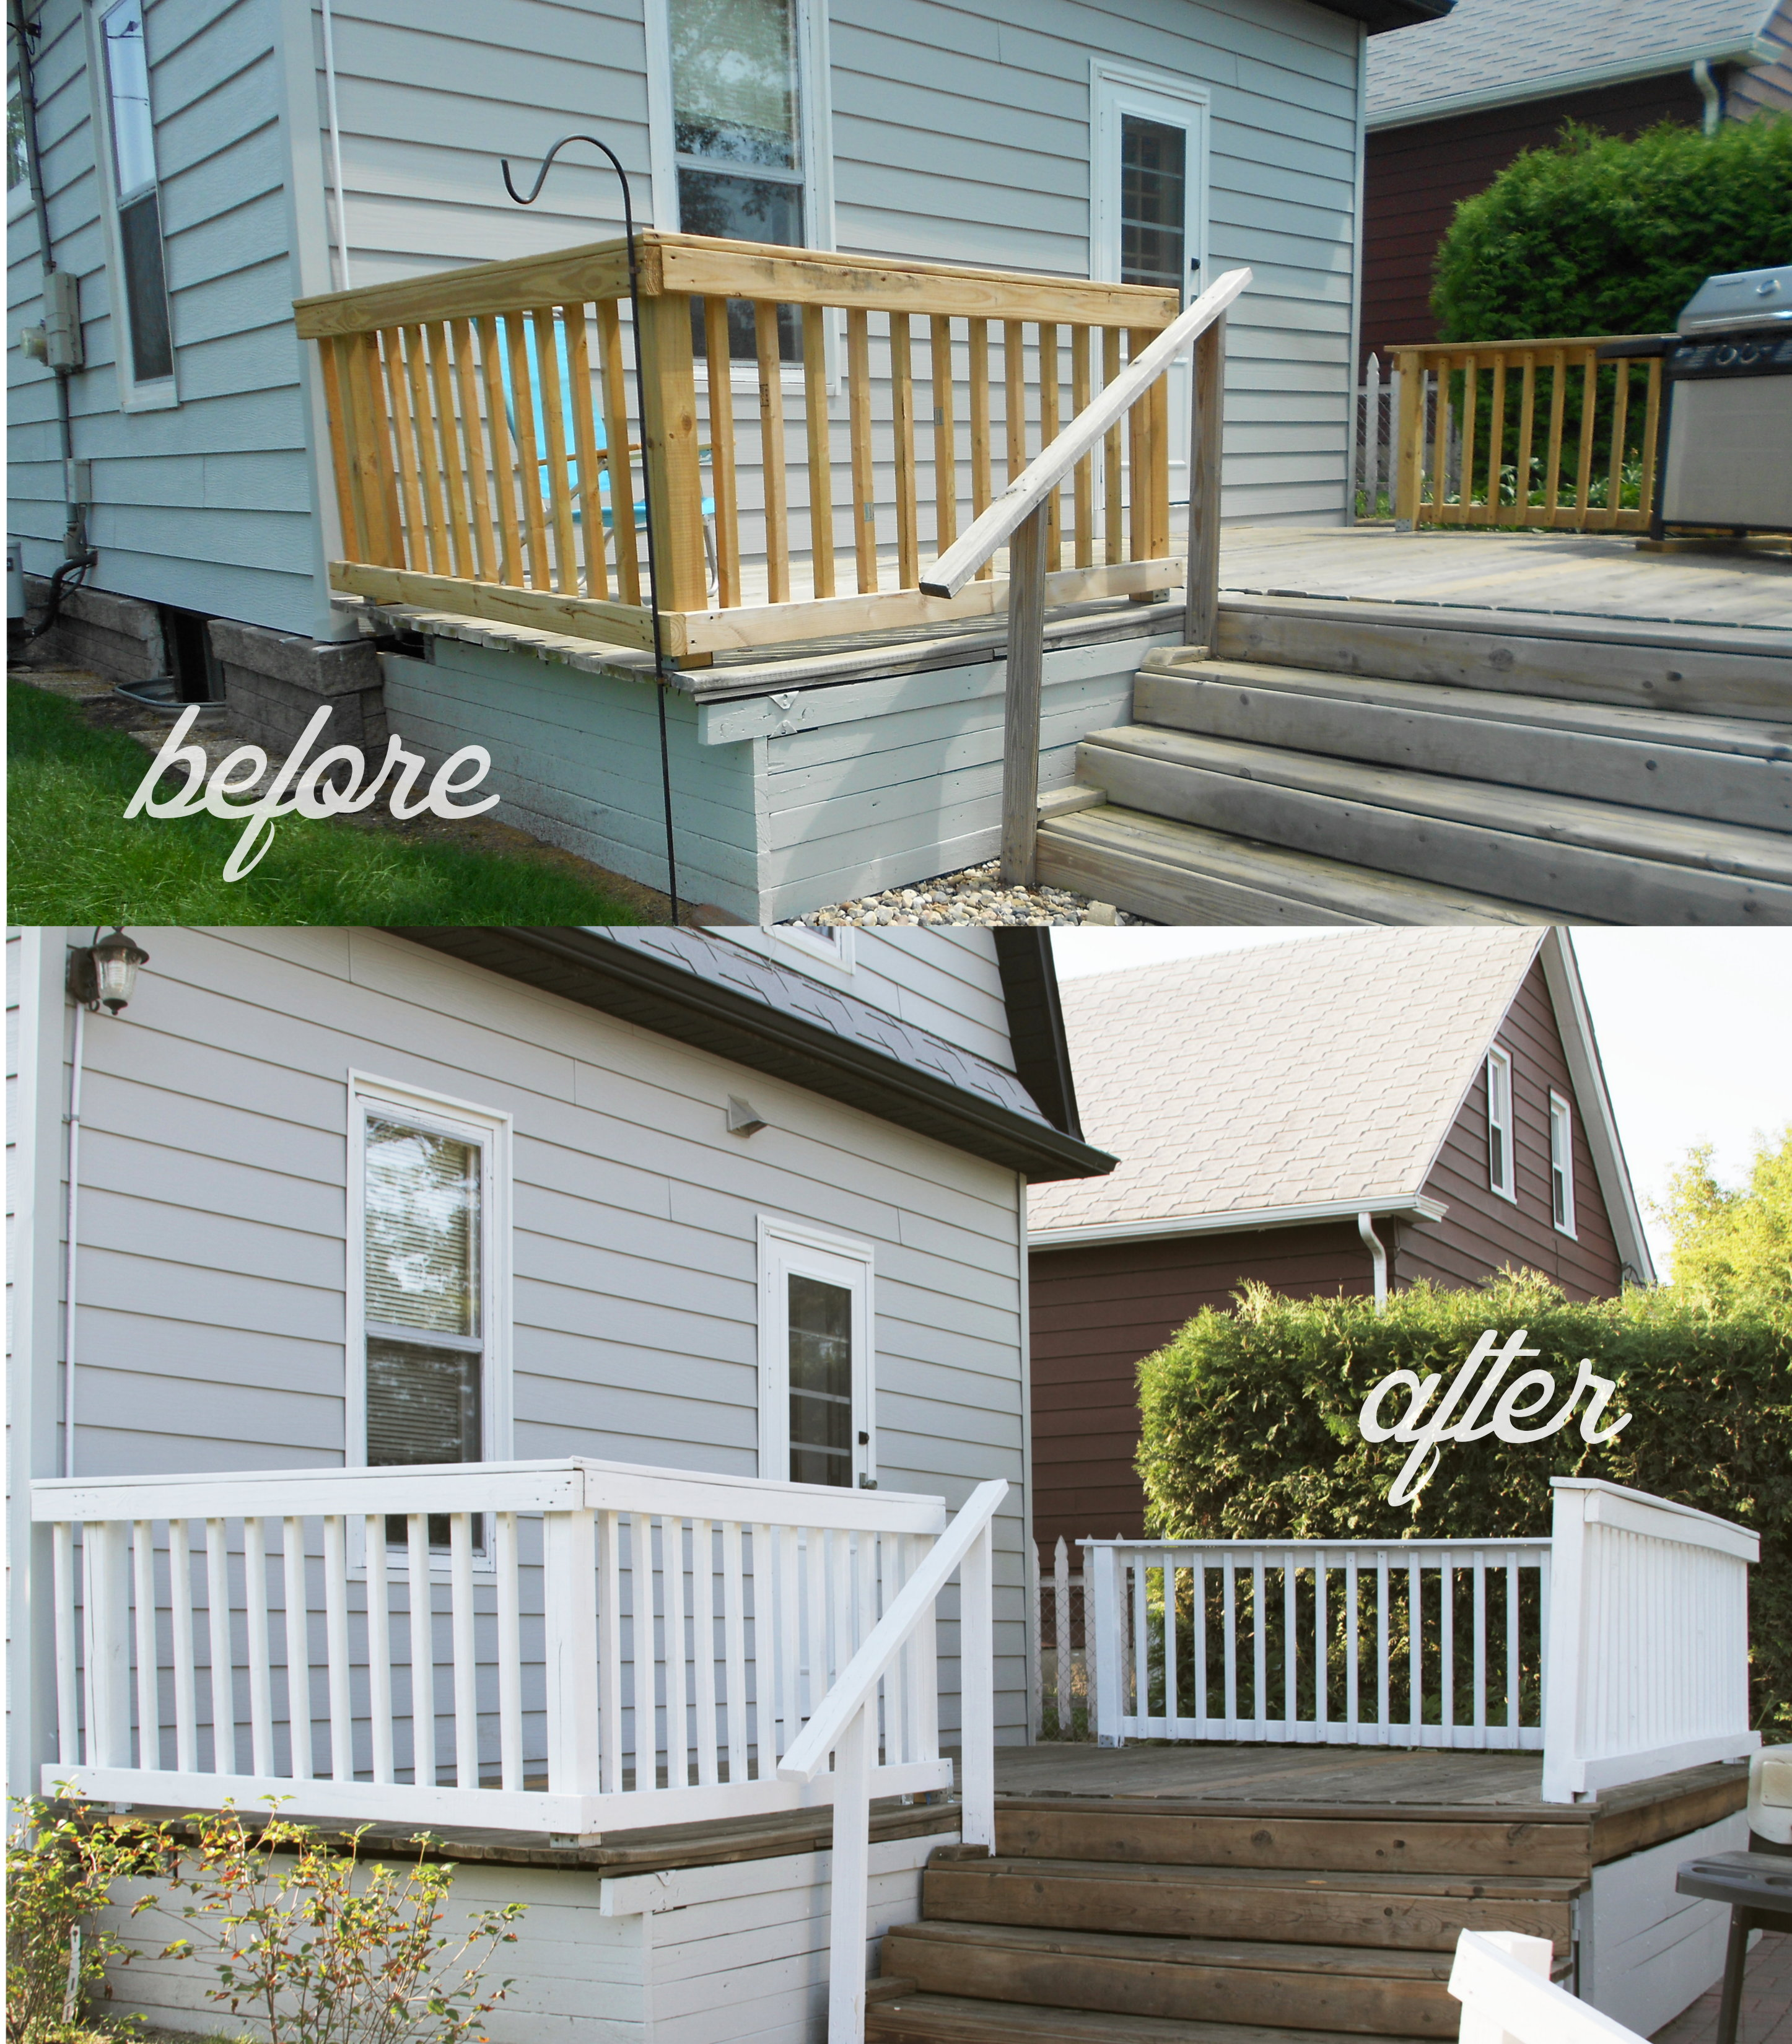 Decking do over under 100 amy allender dot com for Painted deck pictures